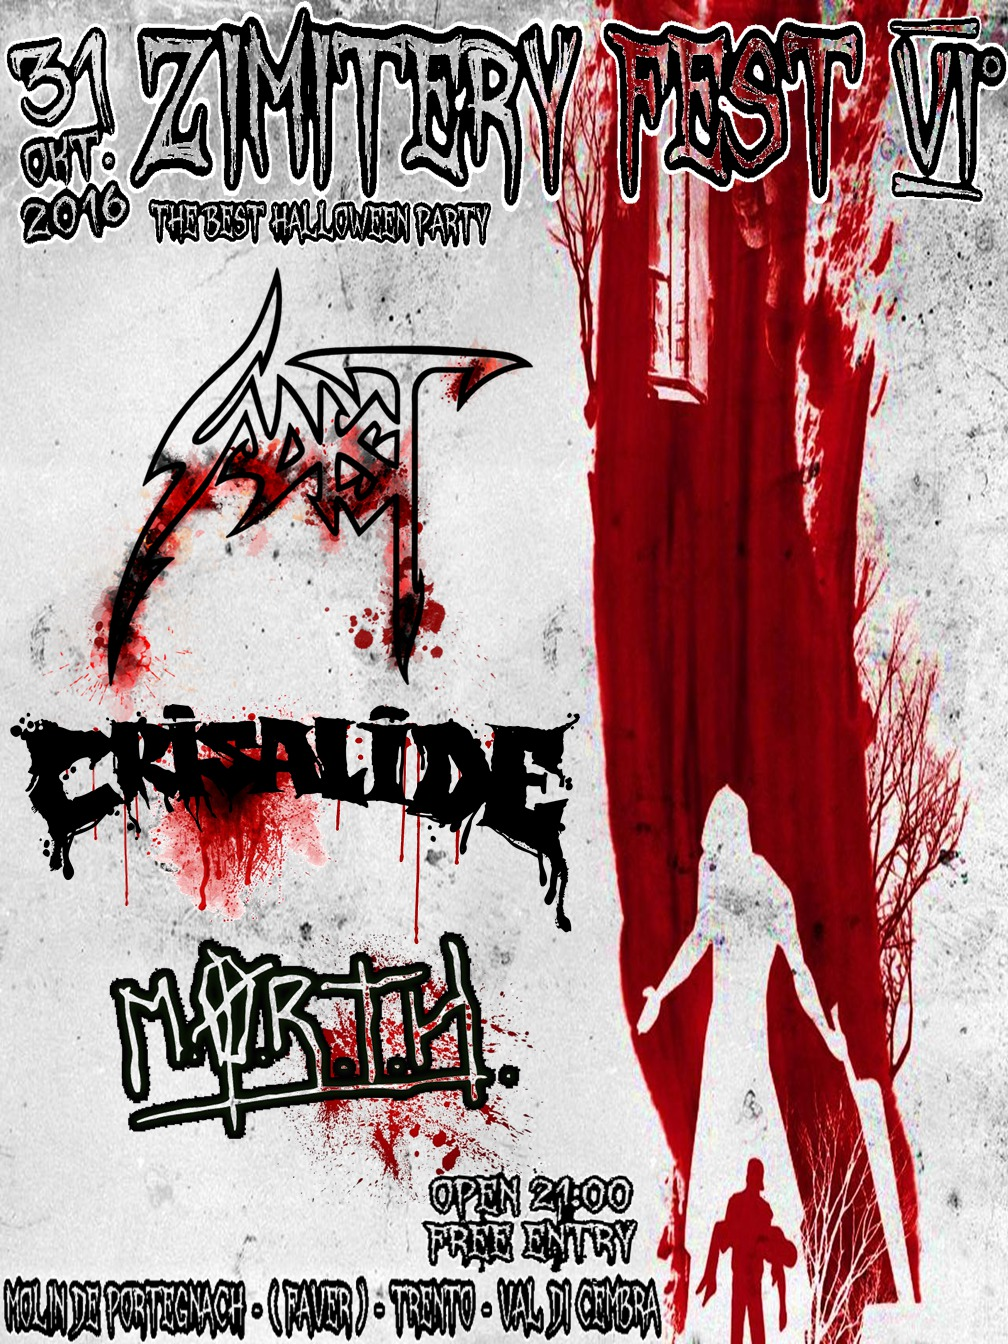 Zimitery Fest 6 with Sadist + Crisalide + M o r t h